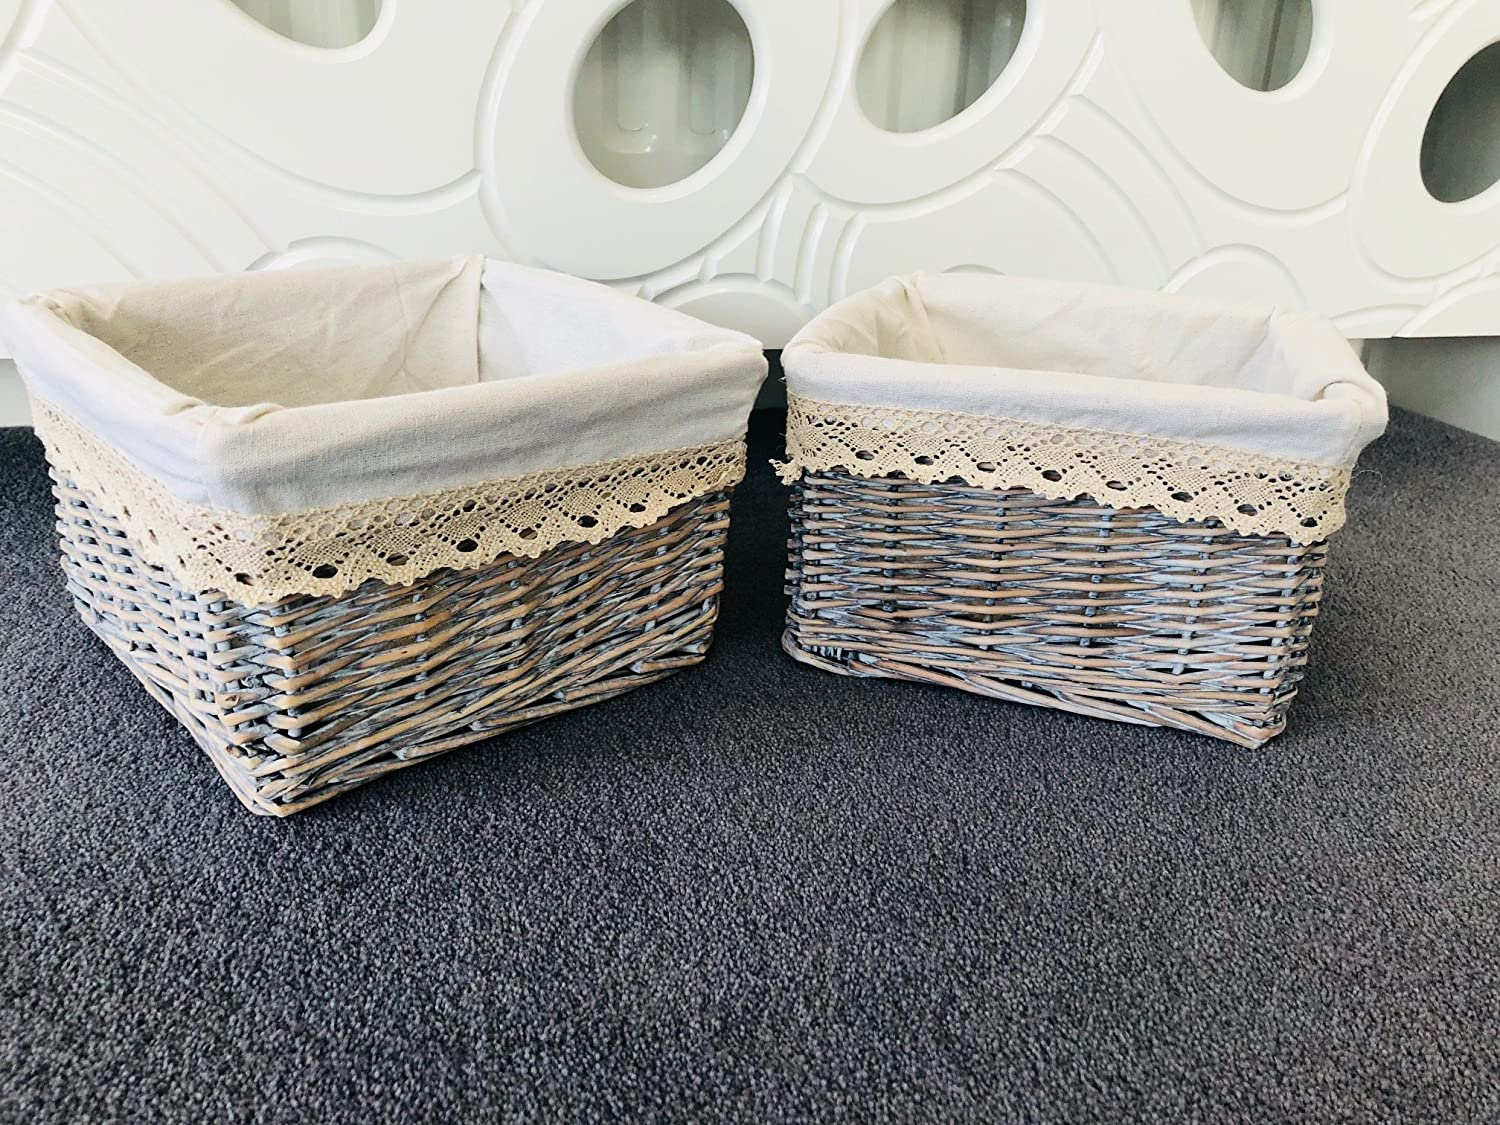 Home Delights 2x Small Grey Wicker Storage Baskets Bathroom Bedroom Cosmetics Shabby Chic